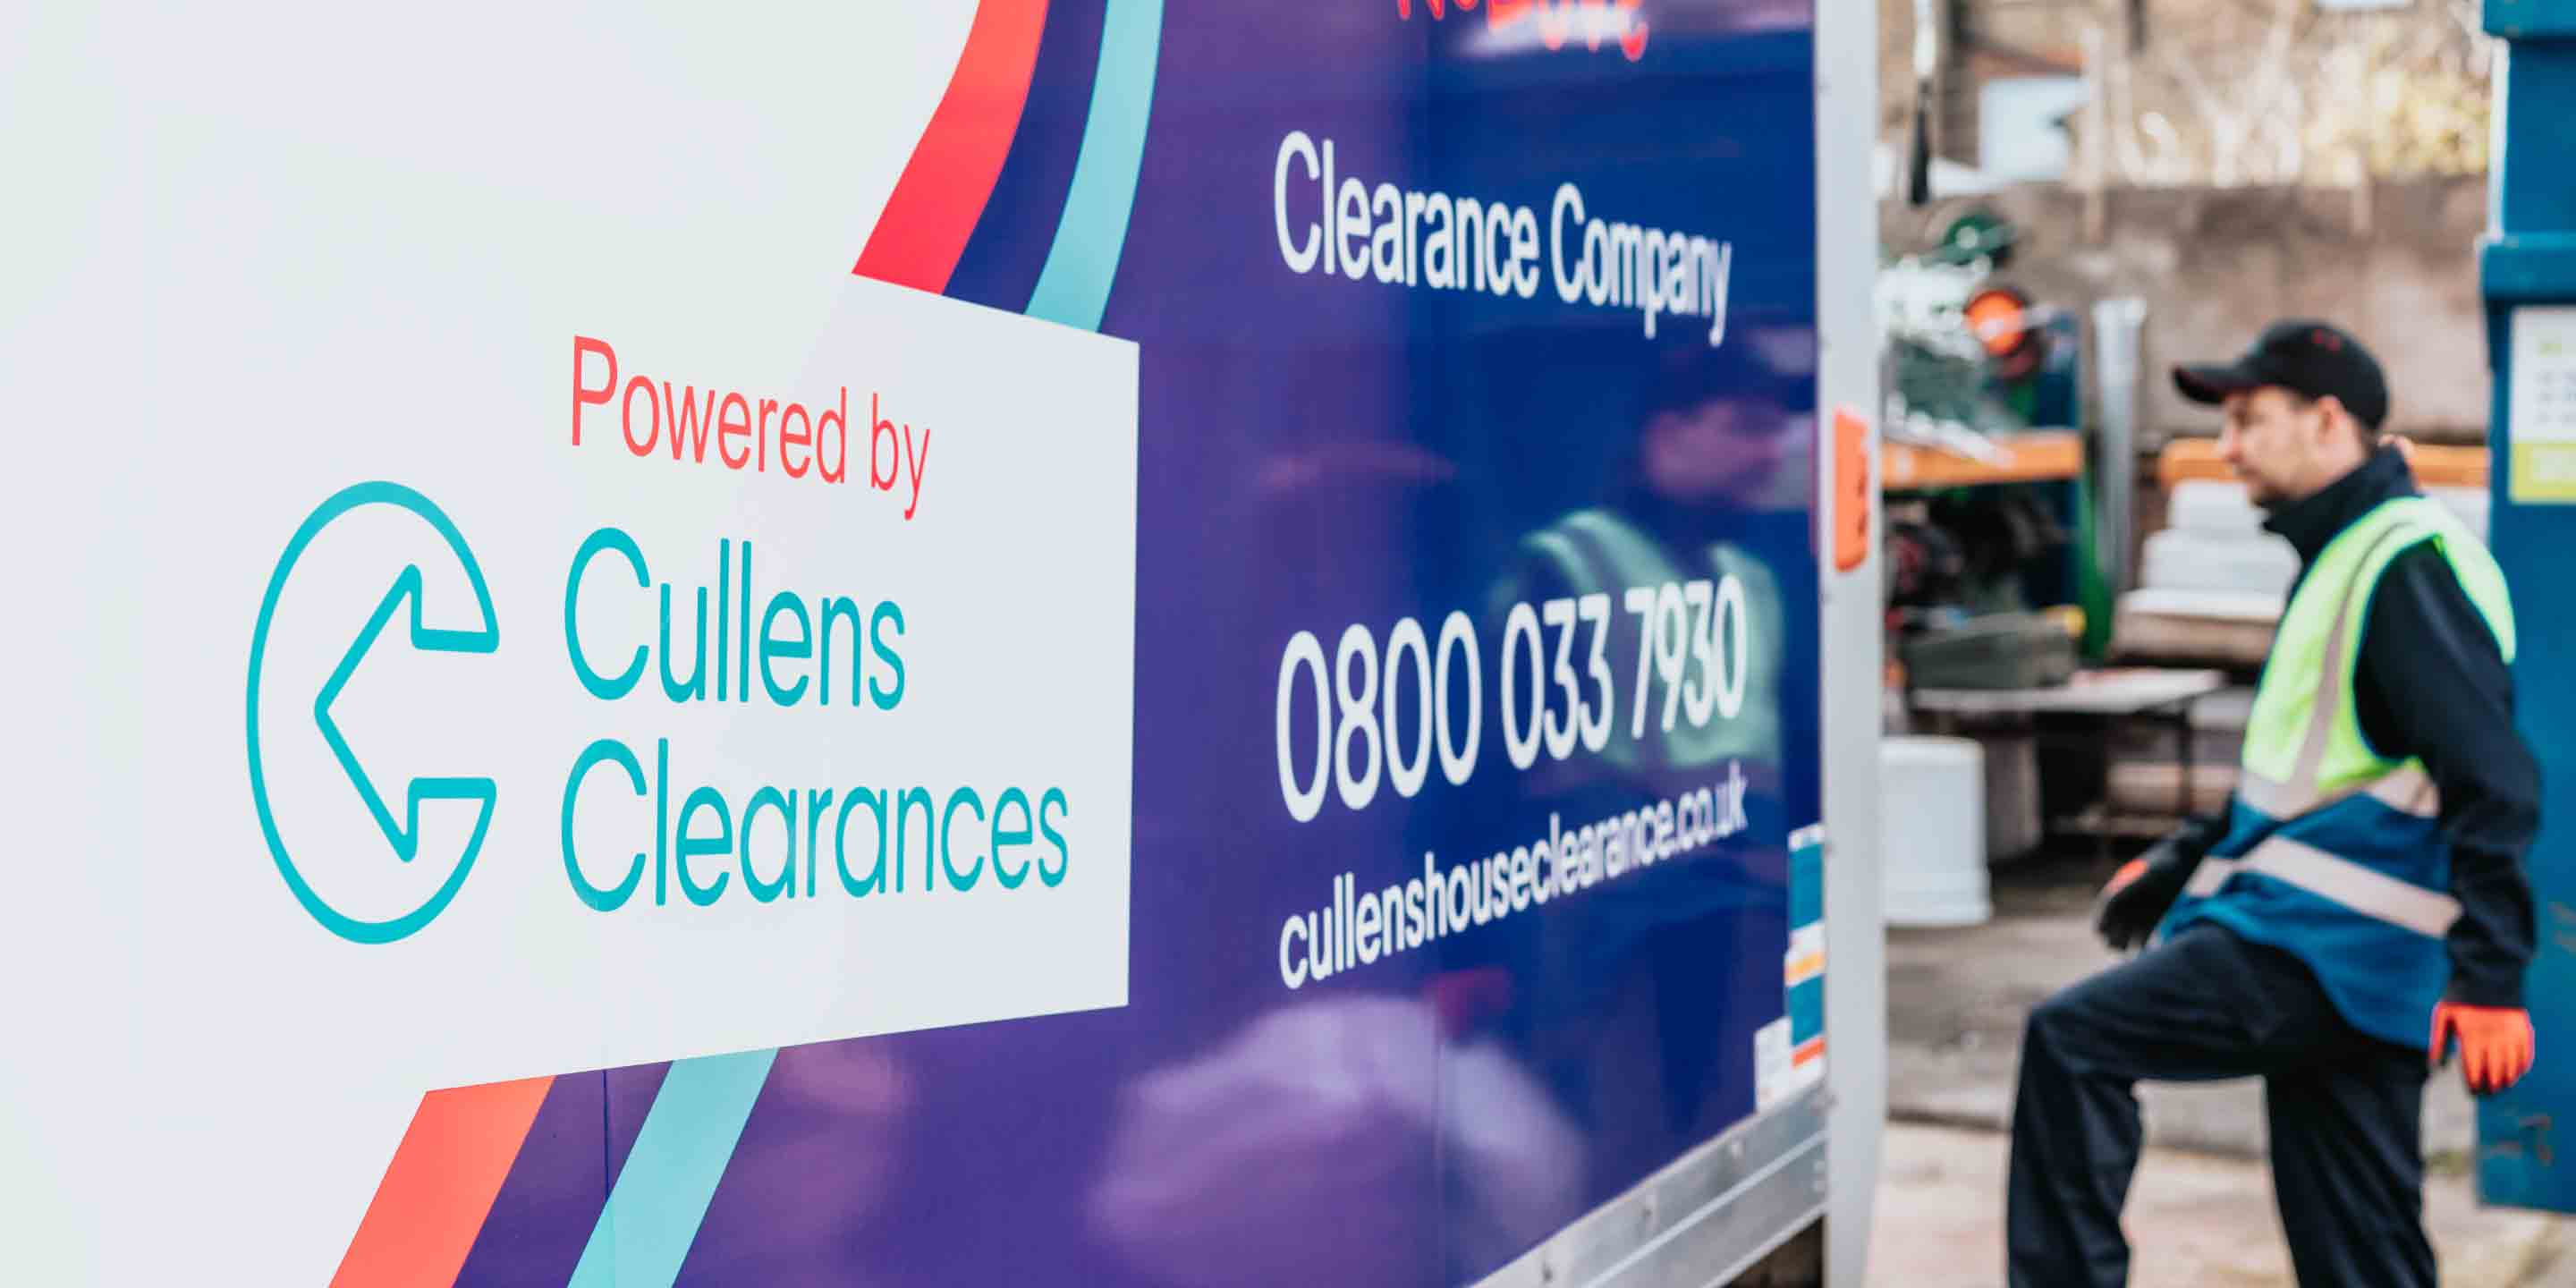 Hillingdon Office Clearance Company